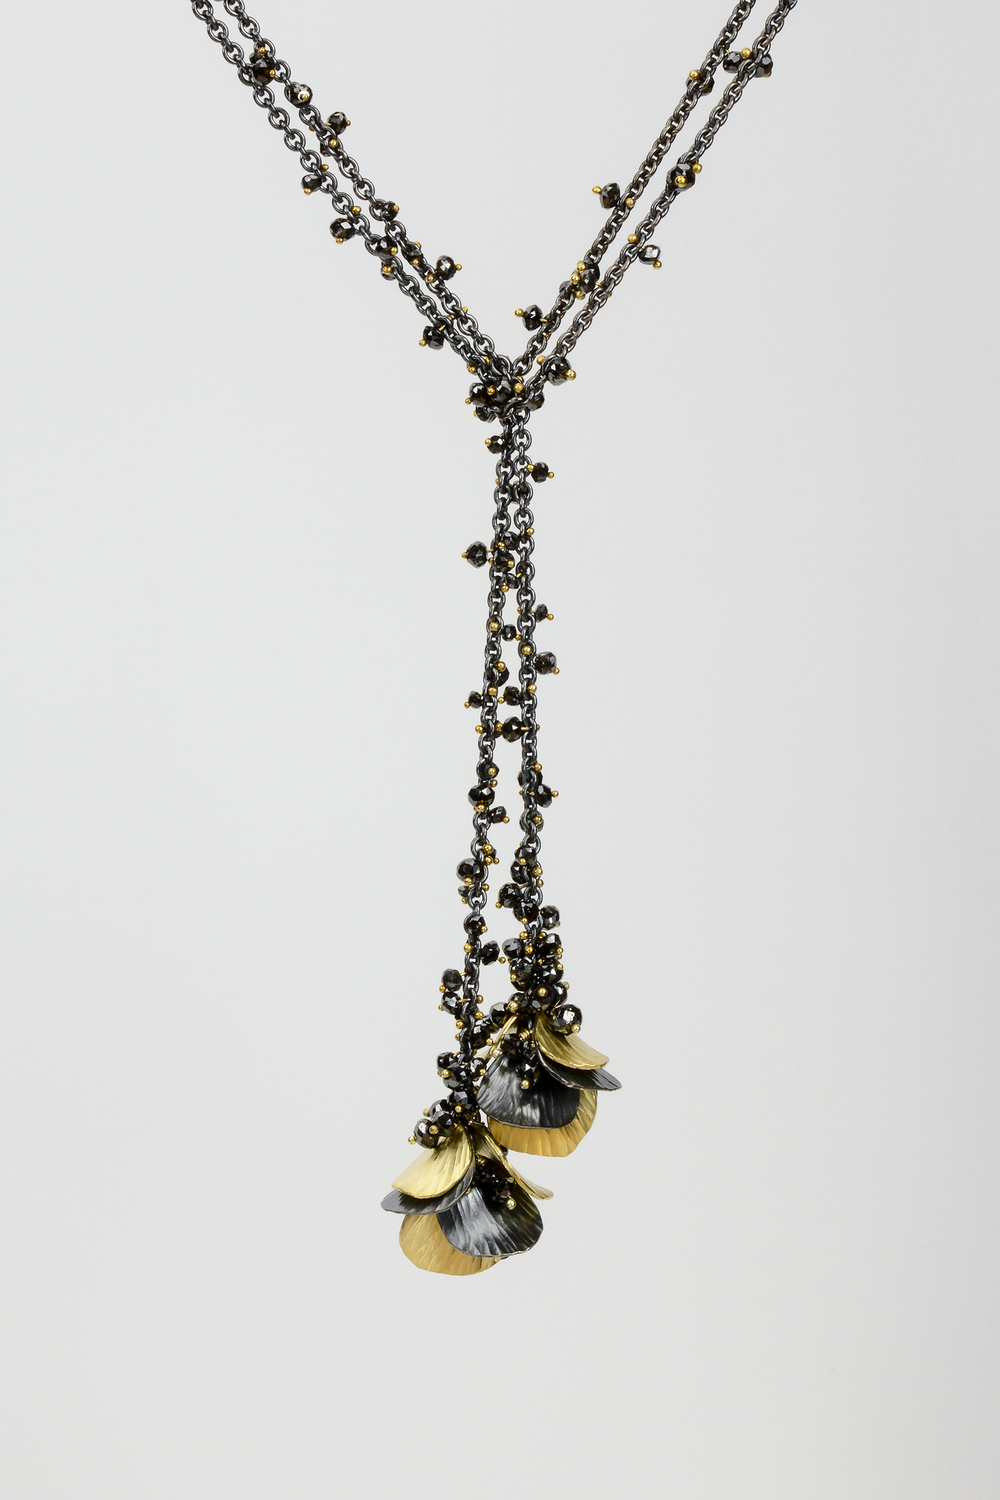 rain chain . oxidized sterling 18ky gold with approx 10 ct tw black diamond beads - 4000.00 (sold) another can be made, similar, but not the same